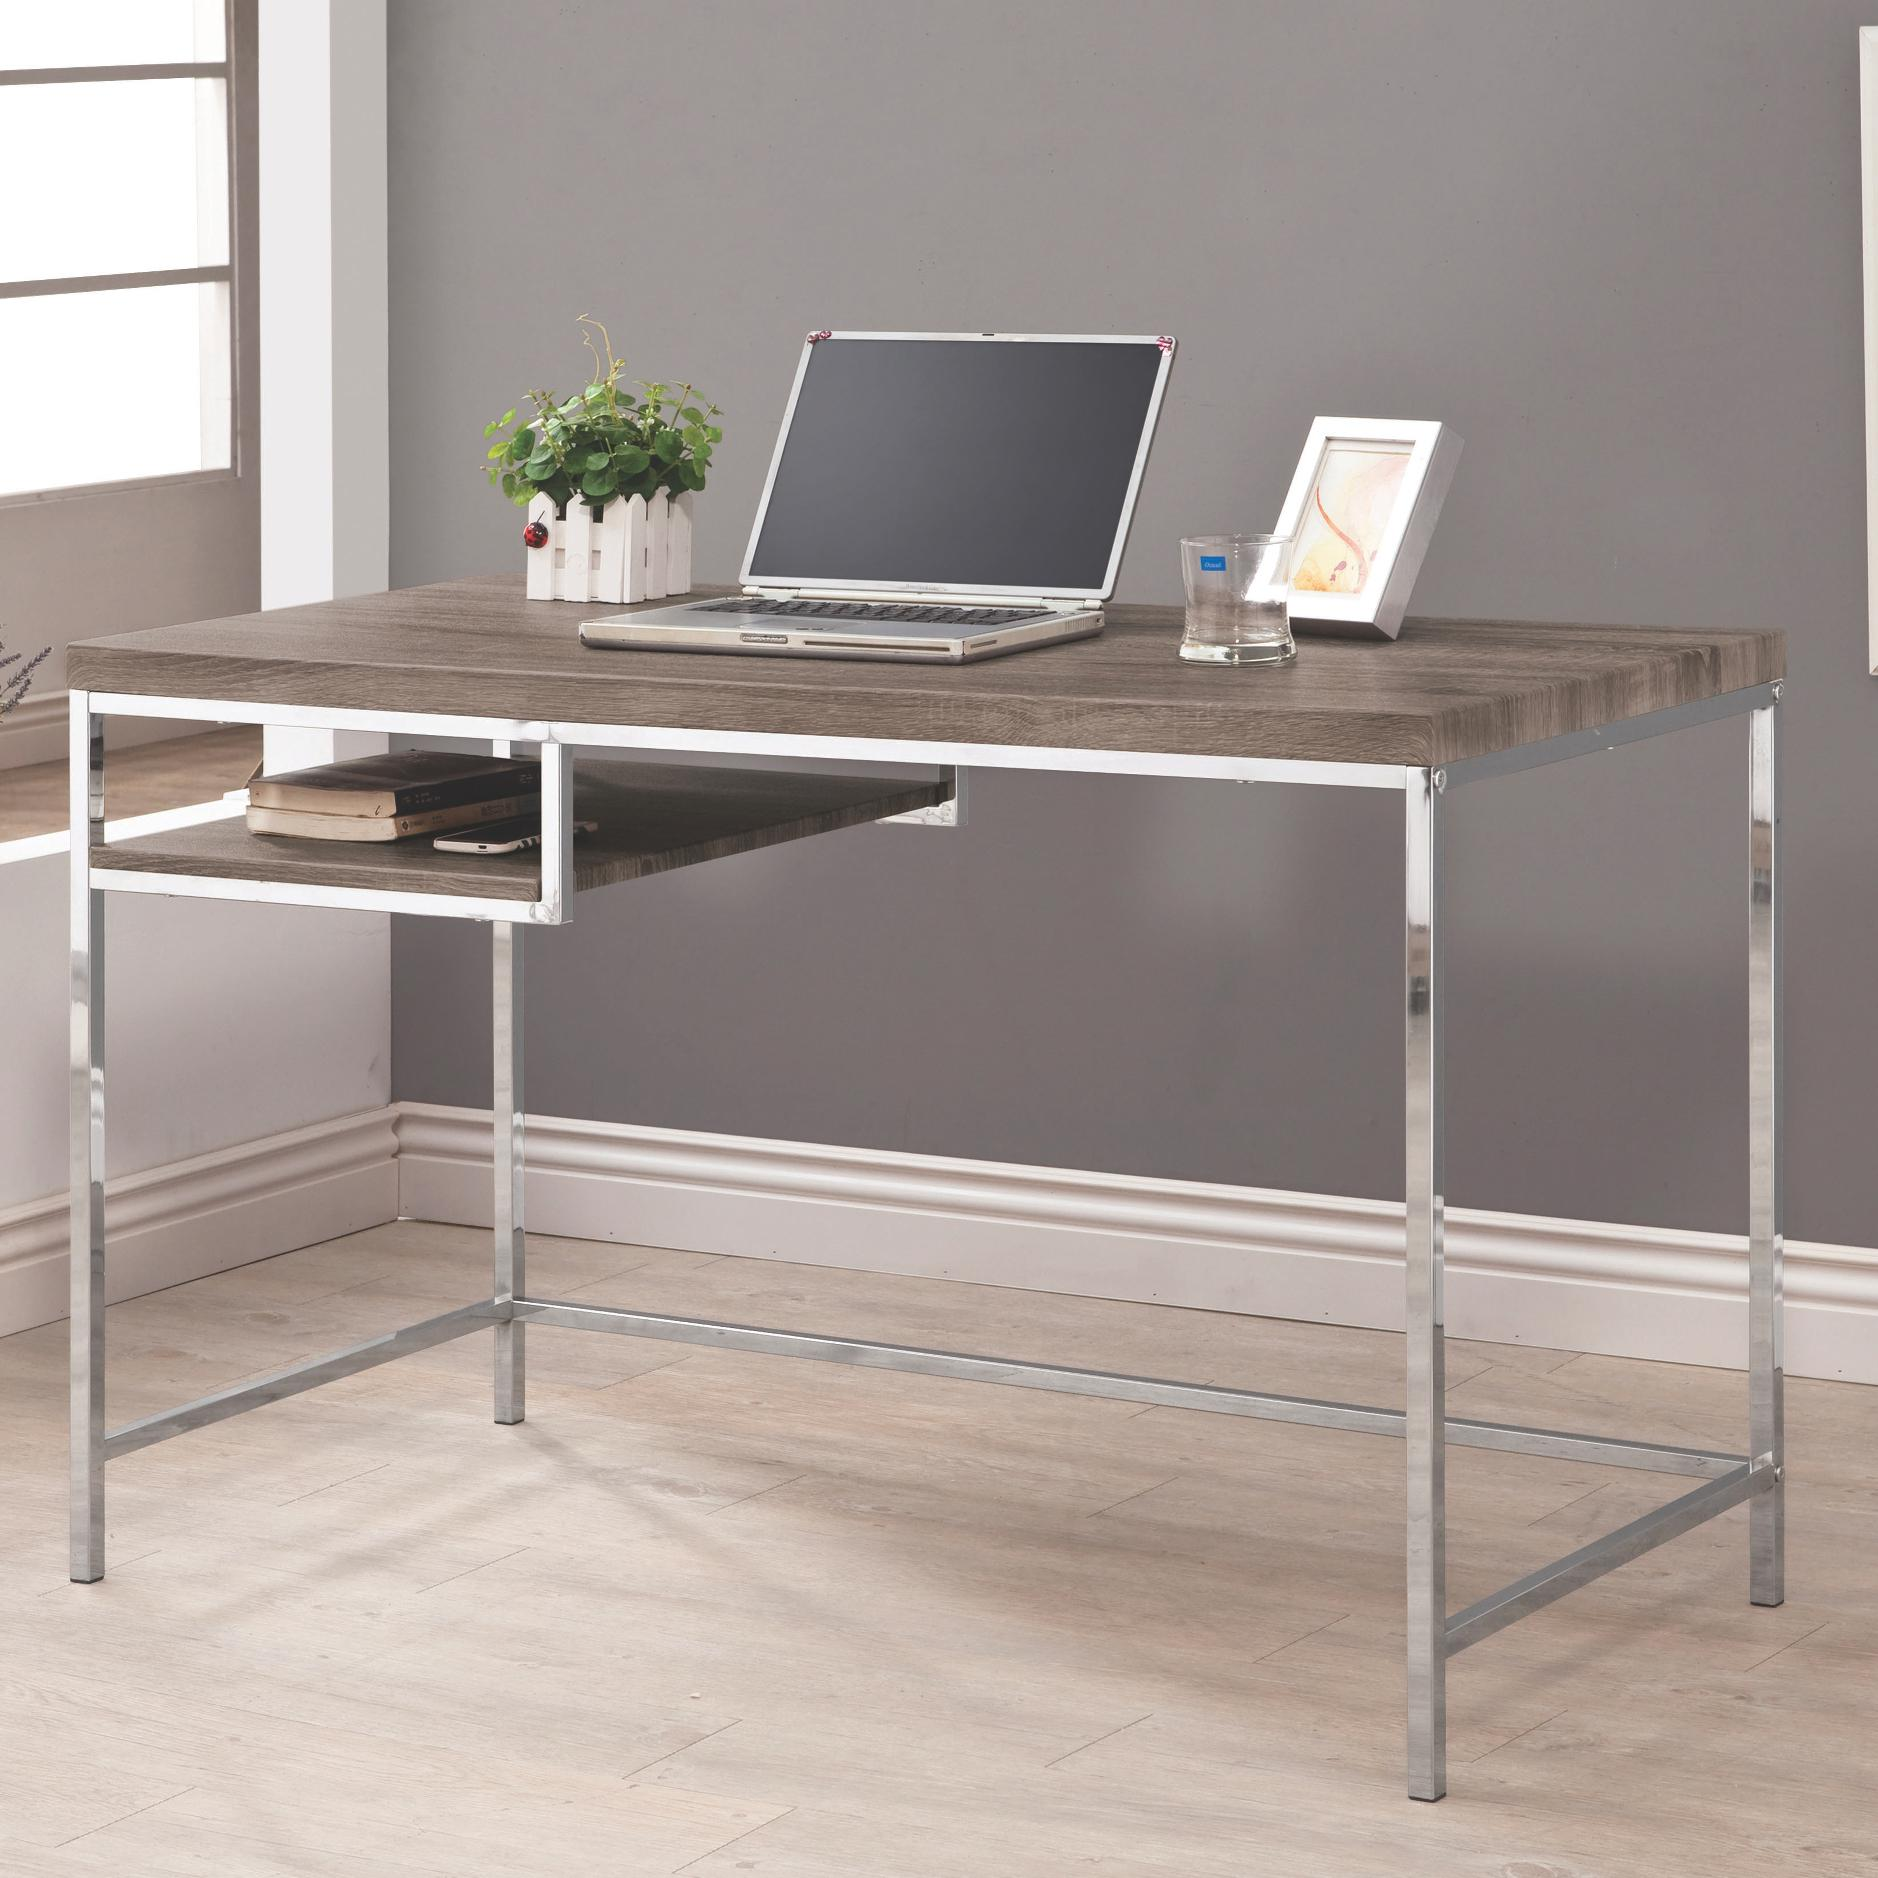 Coaster Computer Desk w Shelf  Value City Furniture